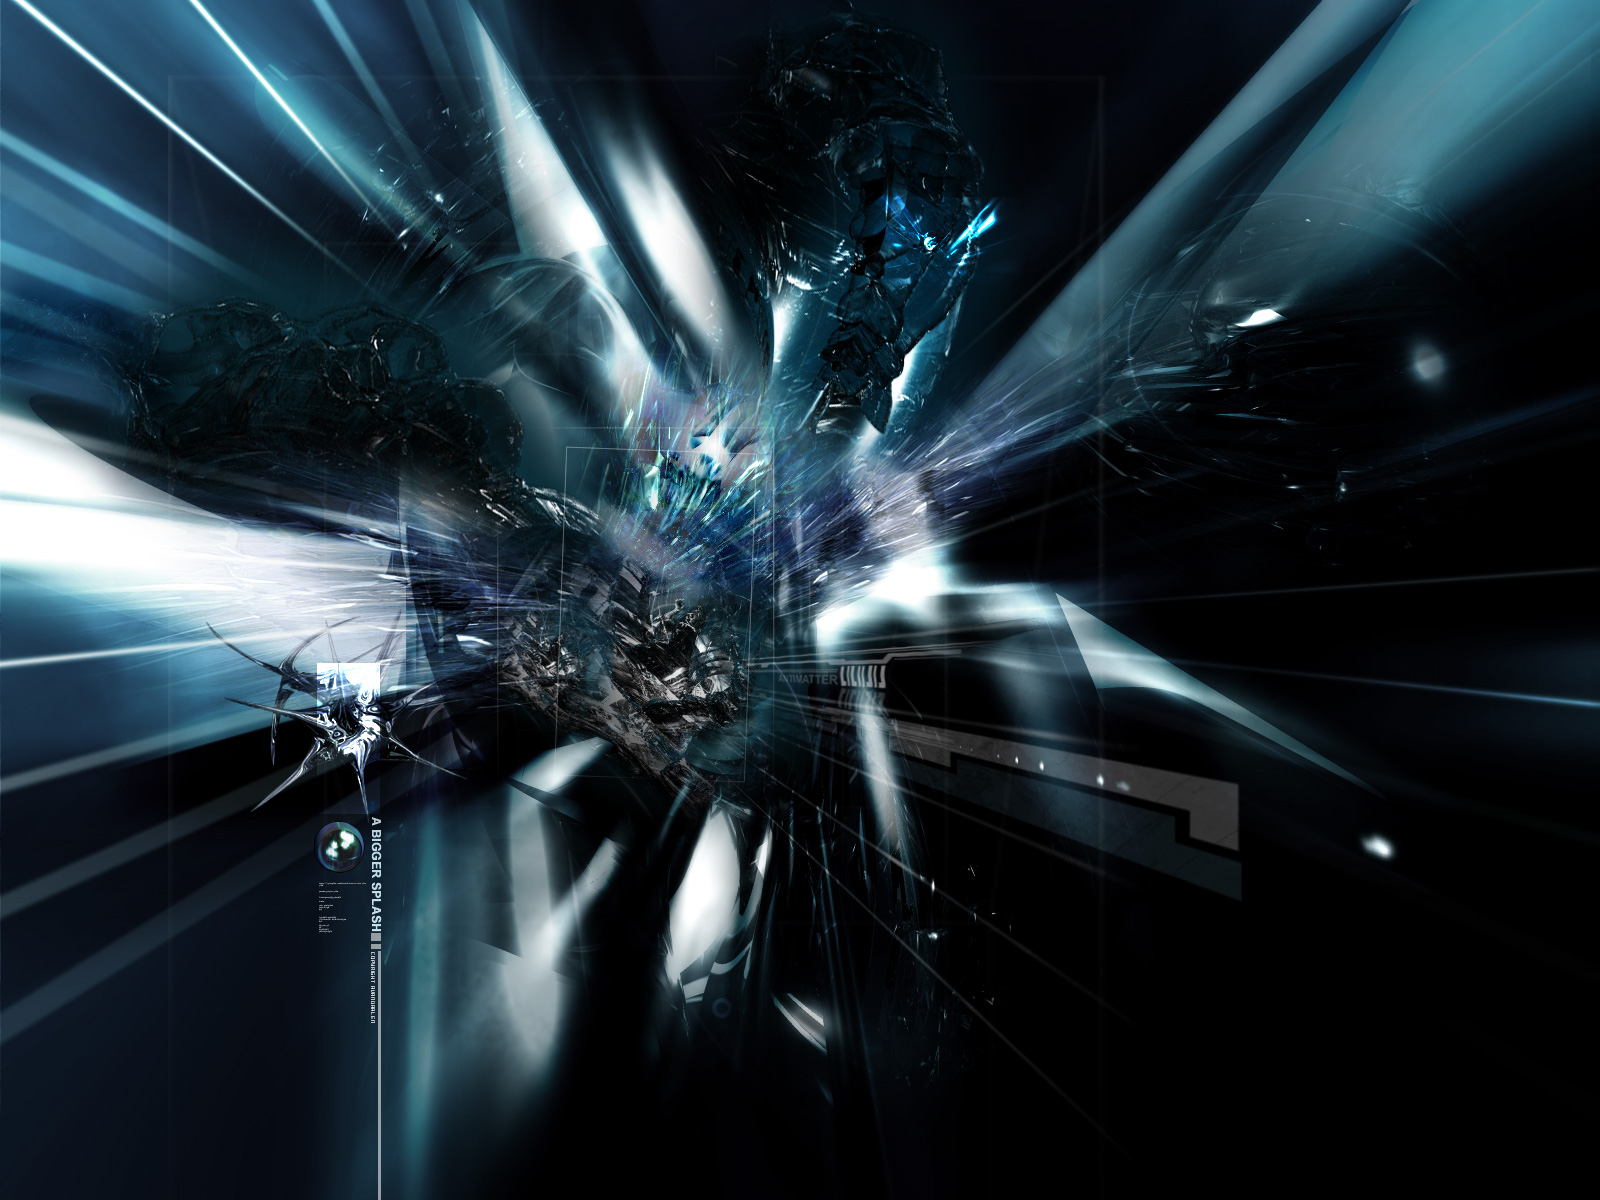 abstract wallpapers wallpaper hqpictures - photo #36